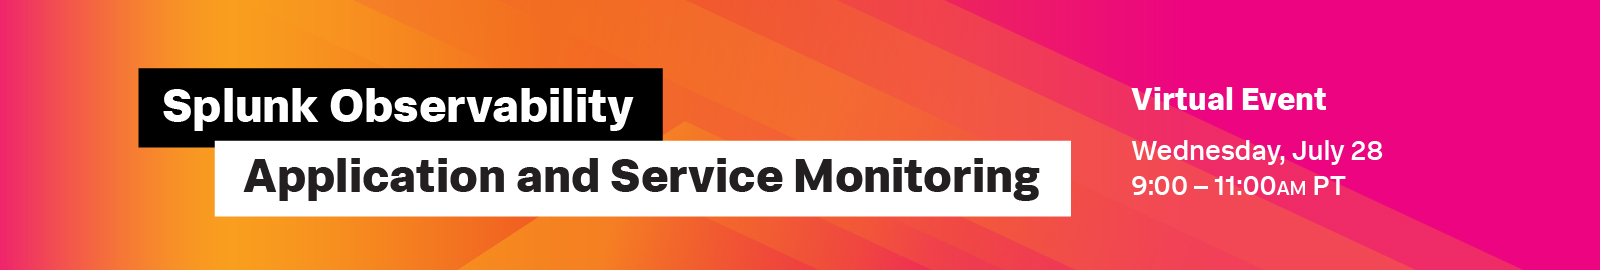 Splunk Observability: Application and Service Monitoring